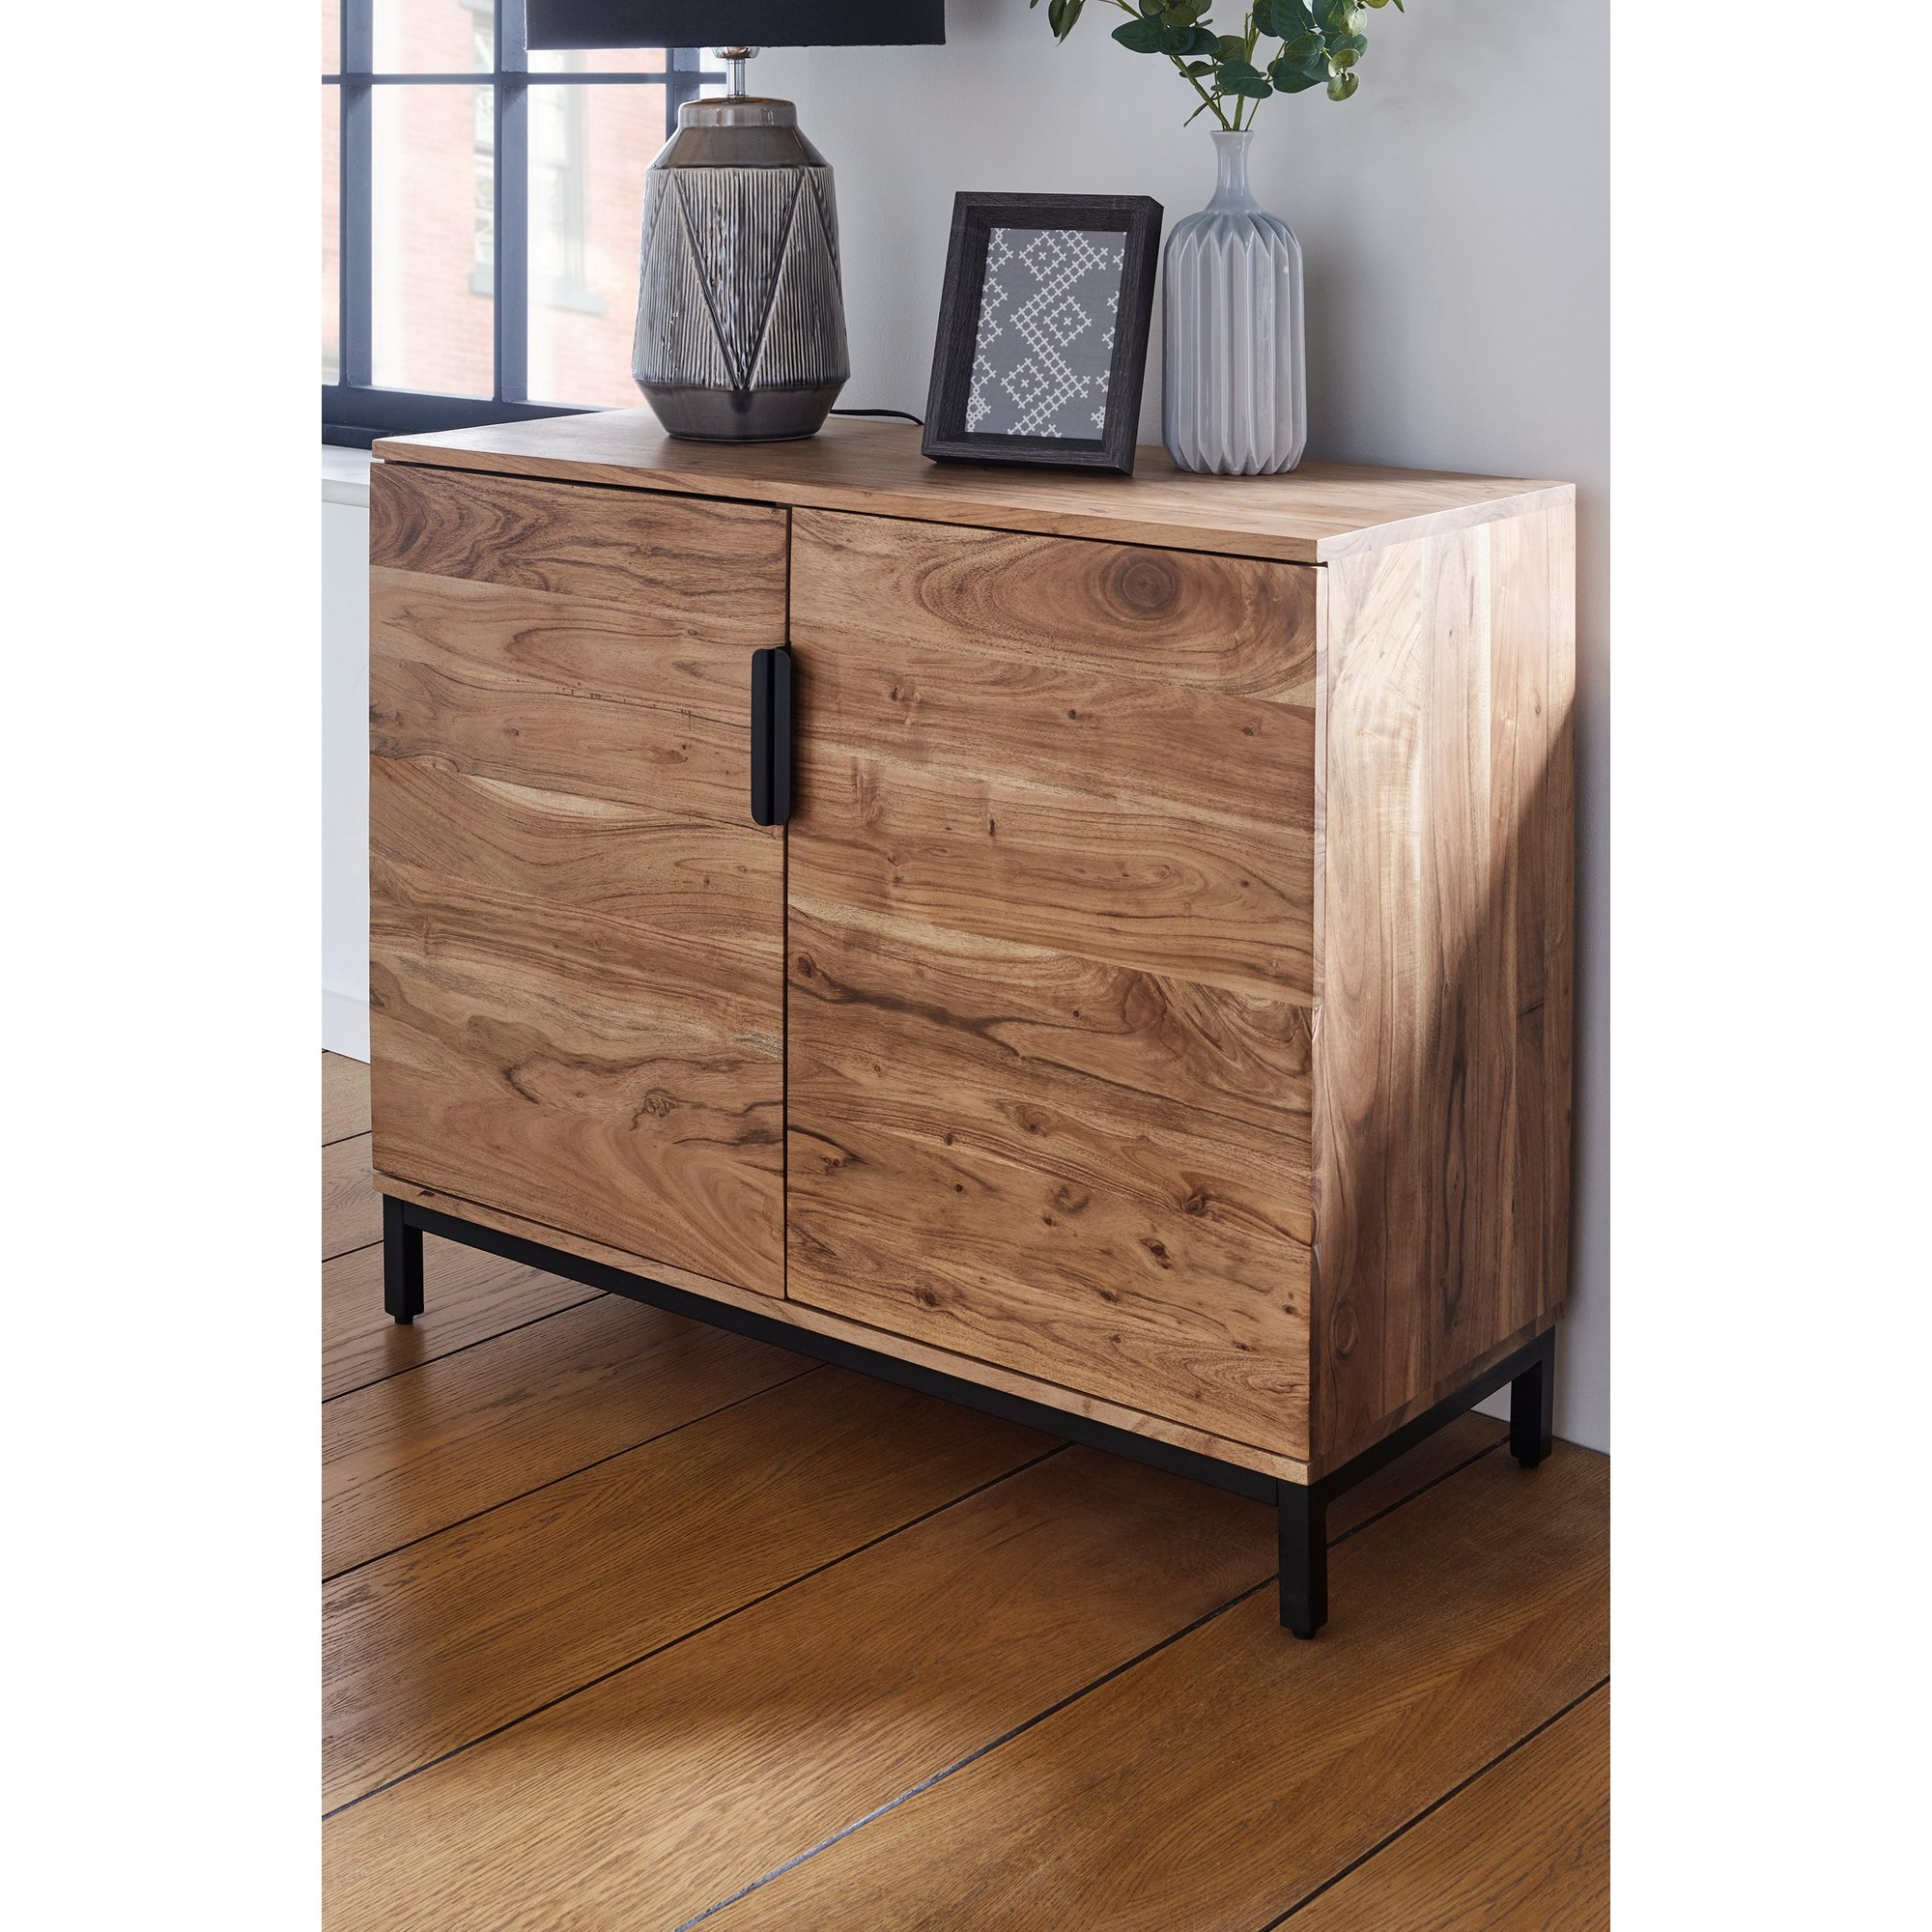 Image of Crompton Sideboard